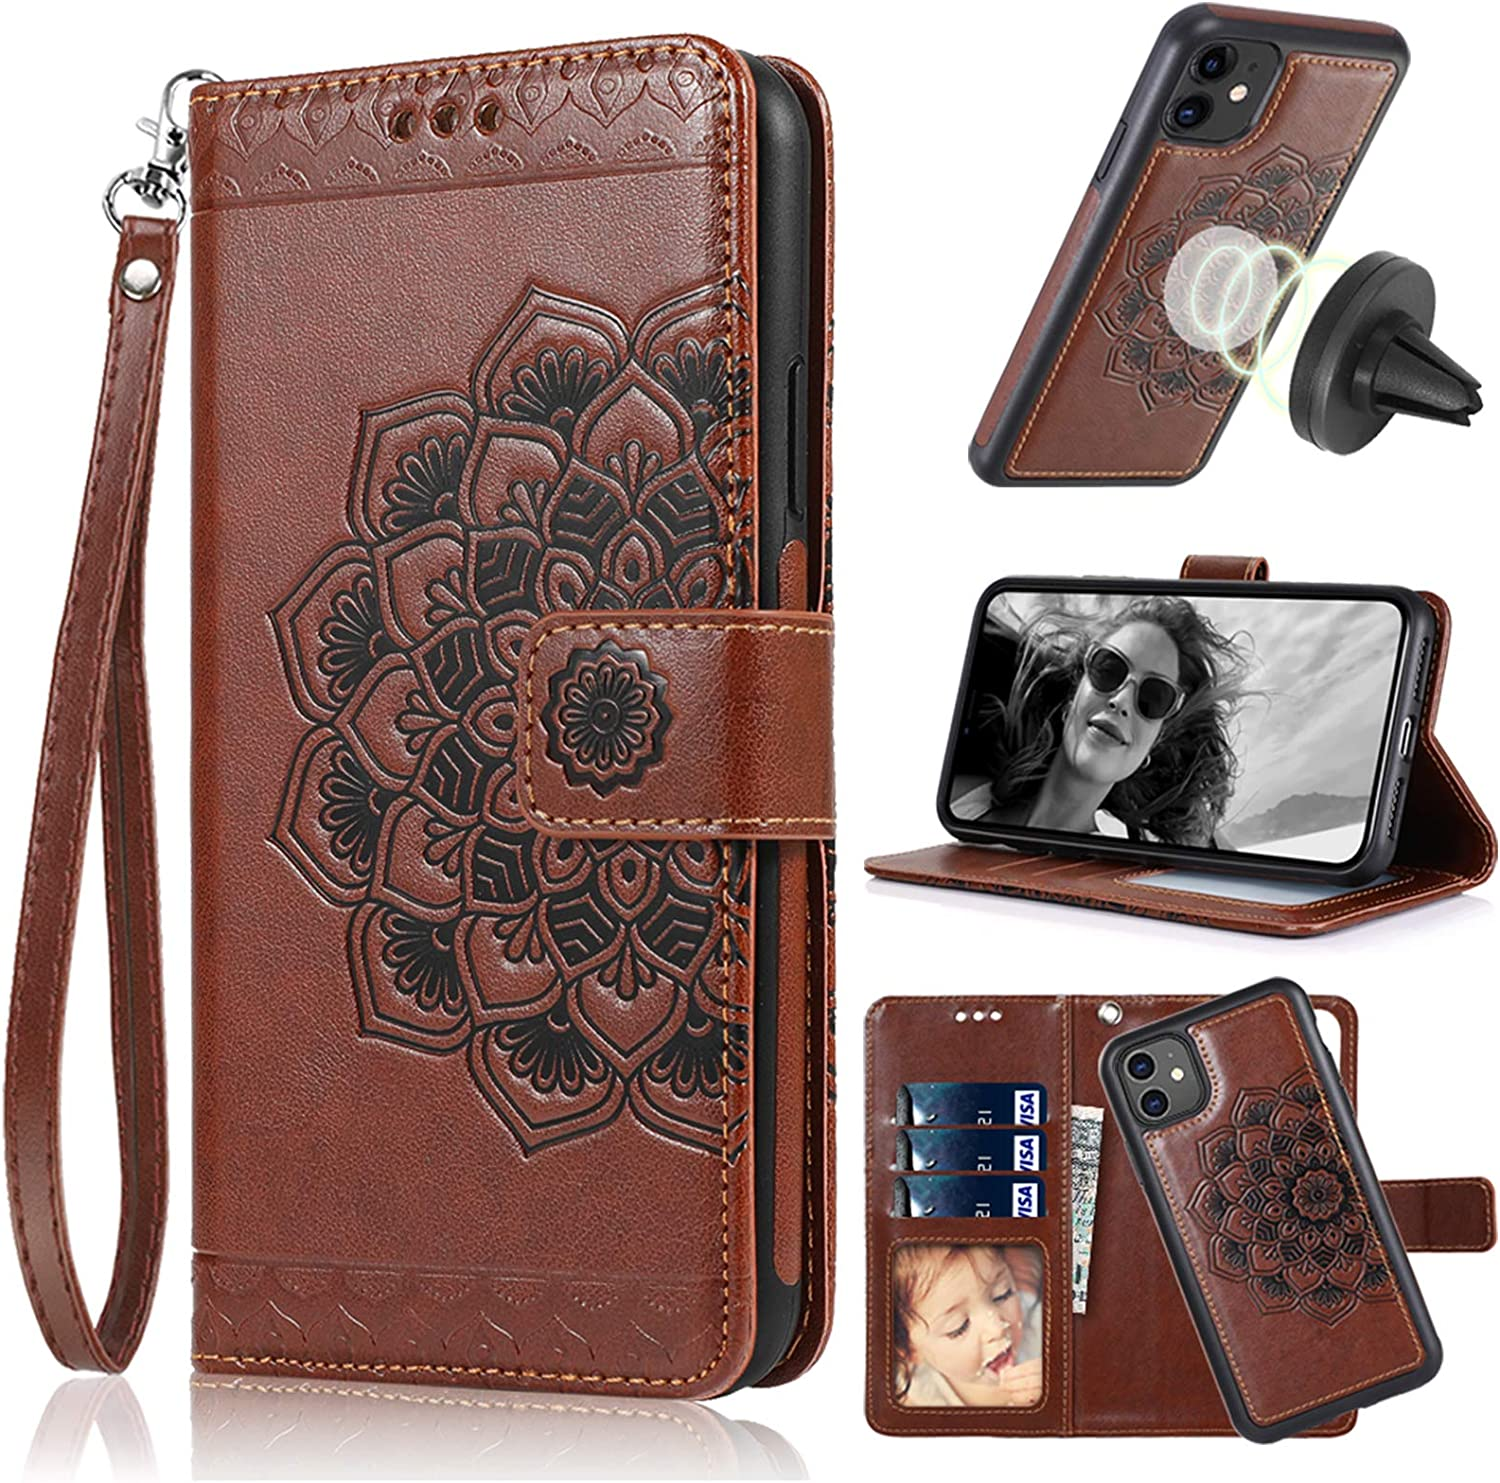 CASEOWL iPhone 11 Case, iPhone 11 Wallet Case 2 in 1 Detachable Slim Fit Car Mount,with Card Holder,Kick Stand,RFID Protection,Strap,Mandala Embossed Leather Wallet Case for iPhone 11-6.1 inch,Brown